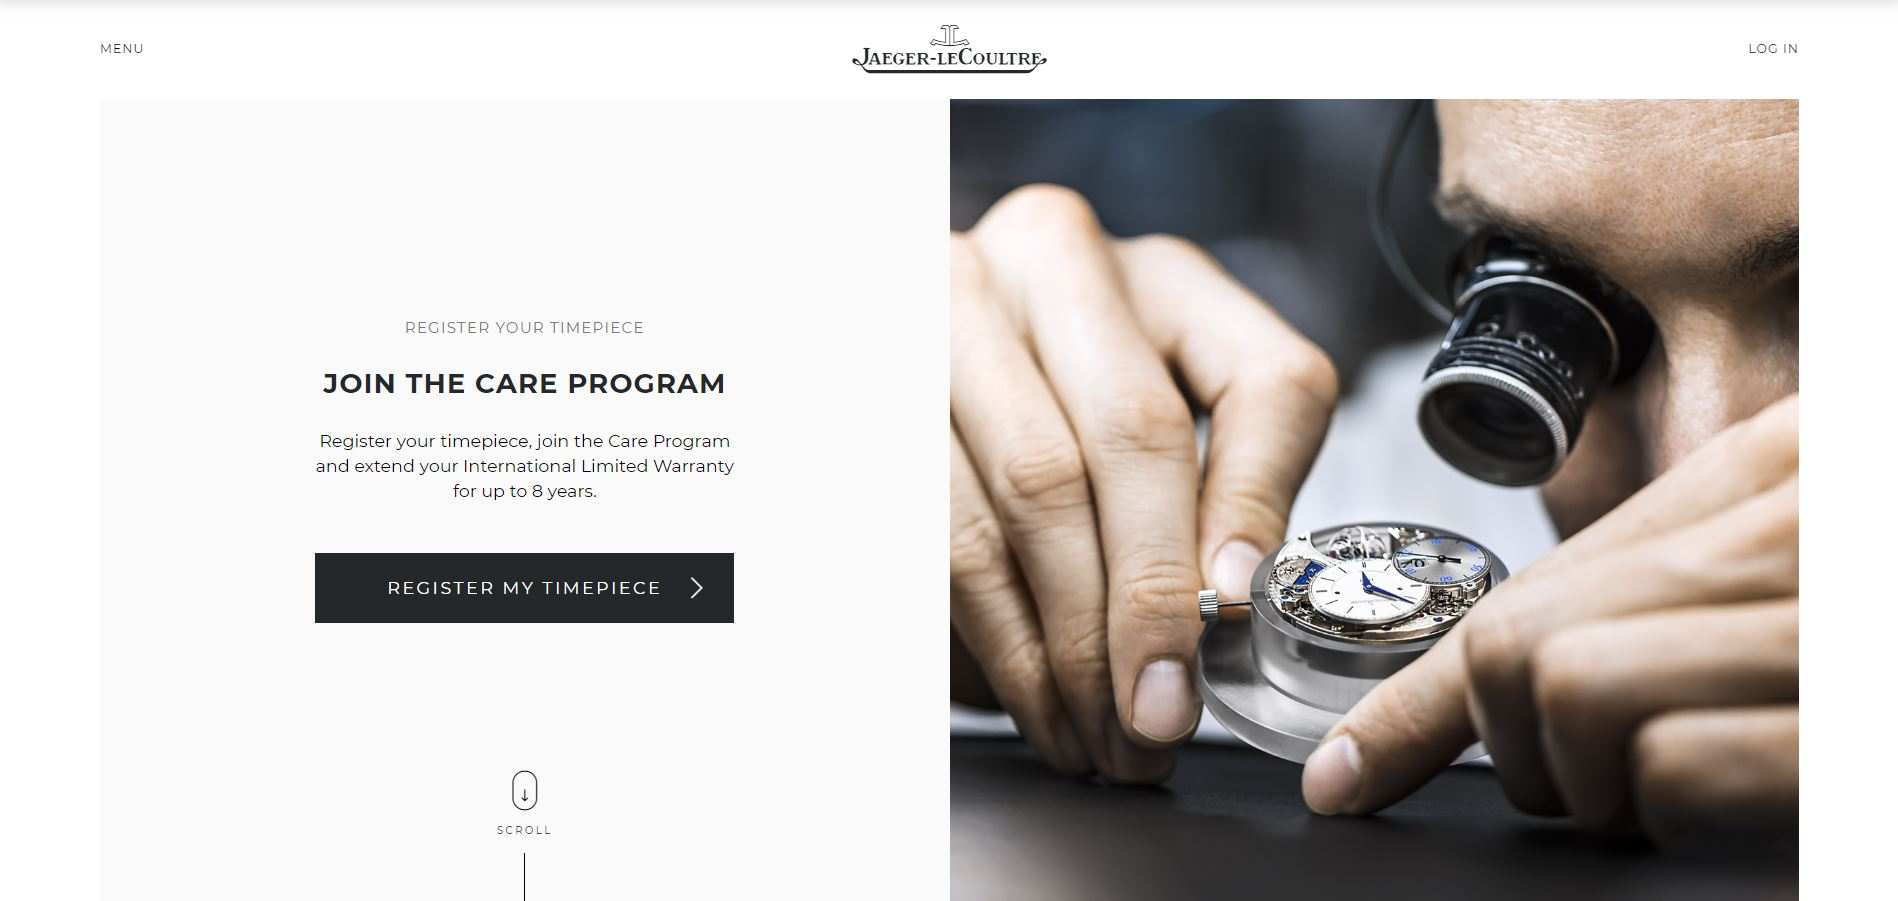 Jaeger-LeCoultre Care Program Launches With an 8-Year Warranty